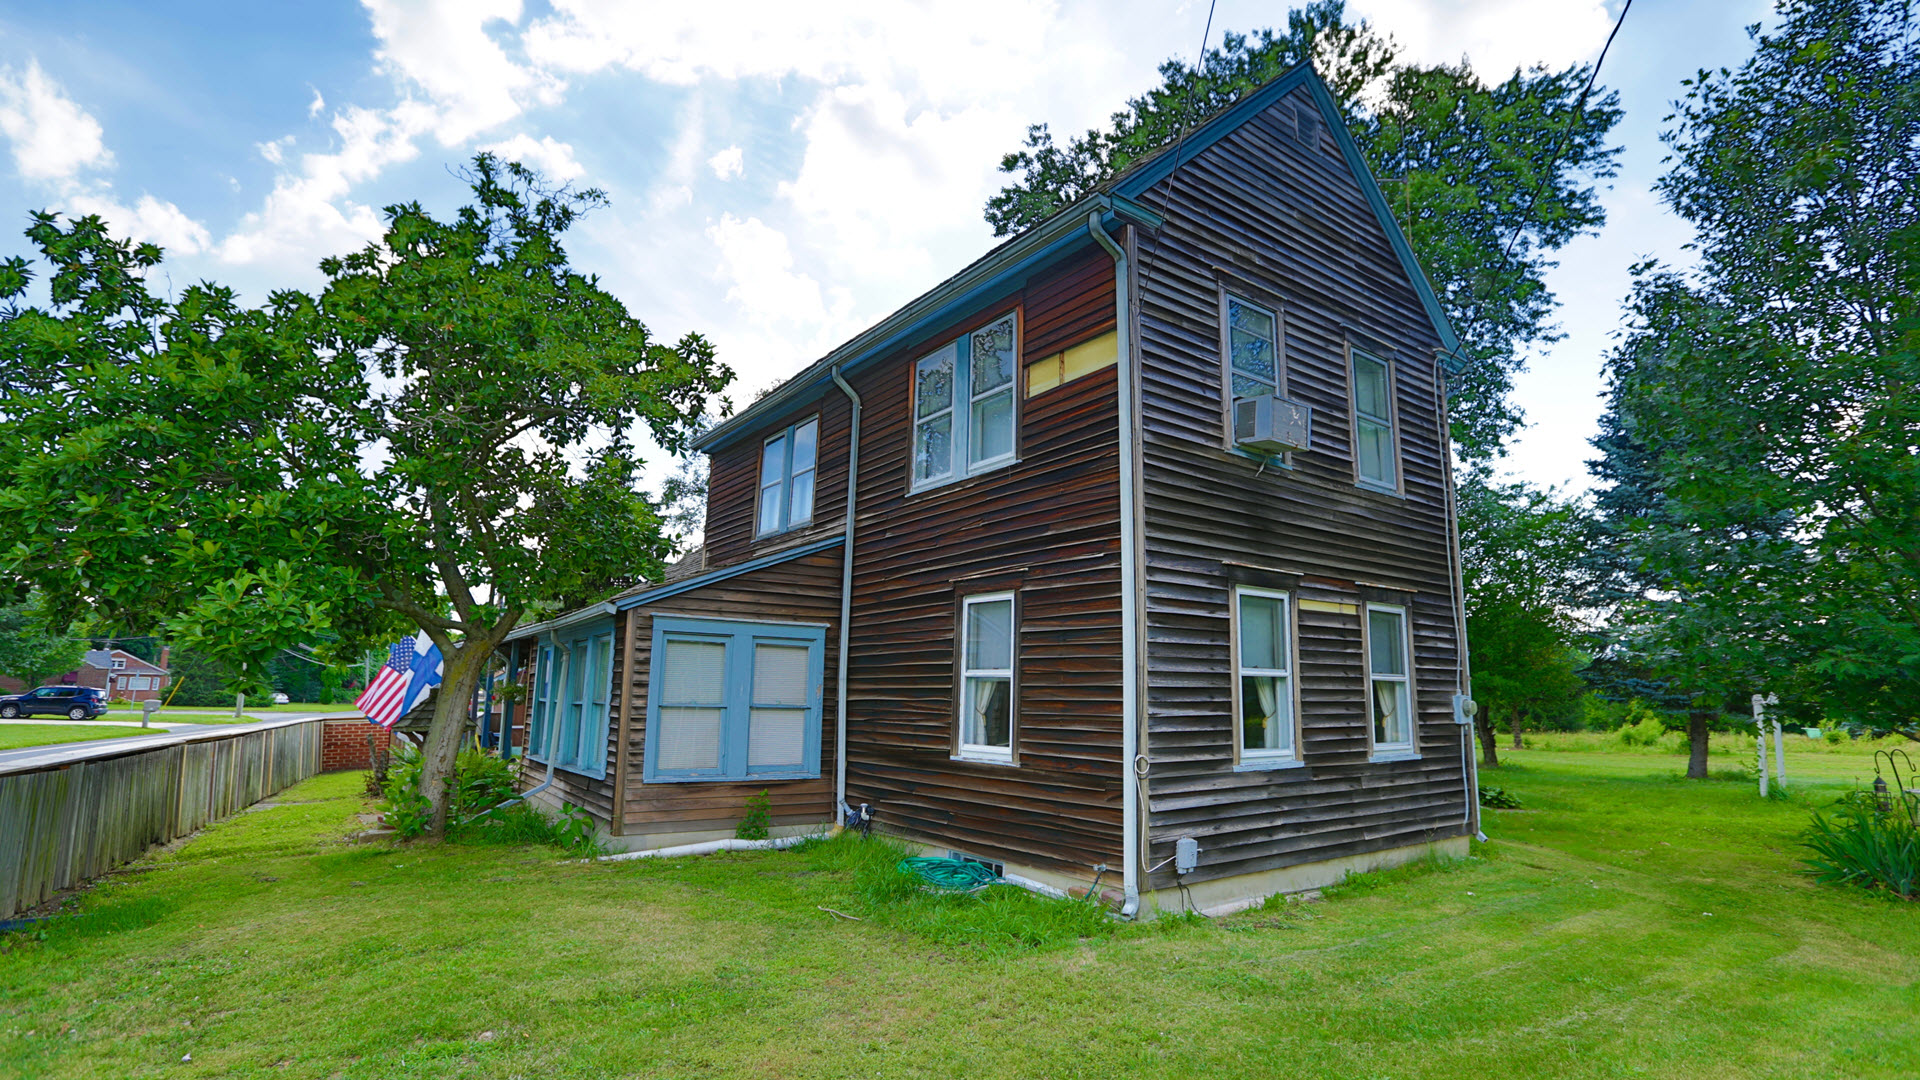 This is the Oldest Log Cabin in America still standing in its original place. She is for sale in New Jersey for $2.9 million